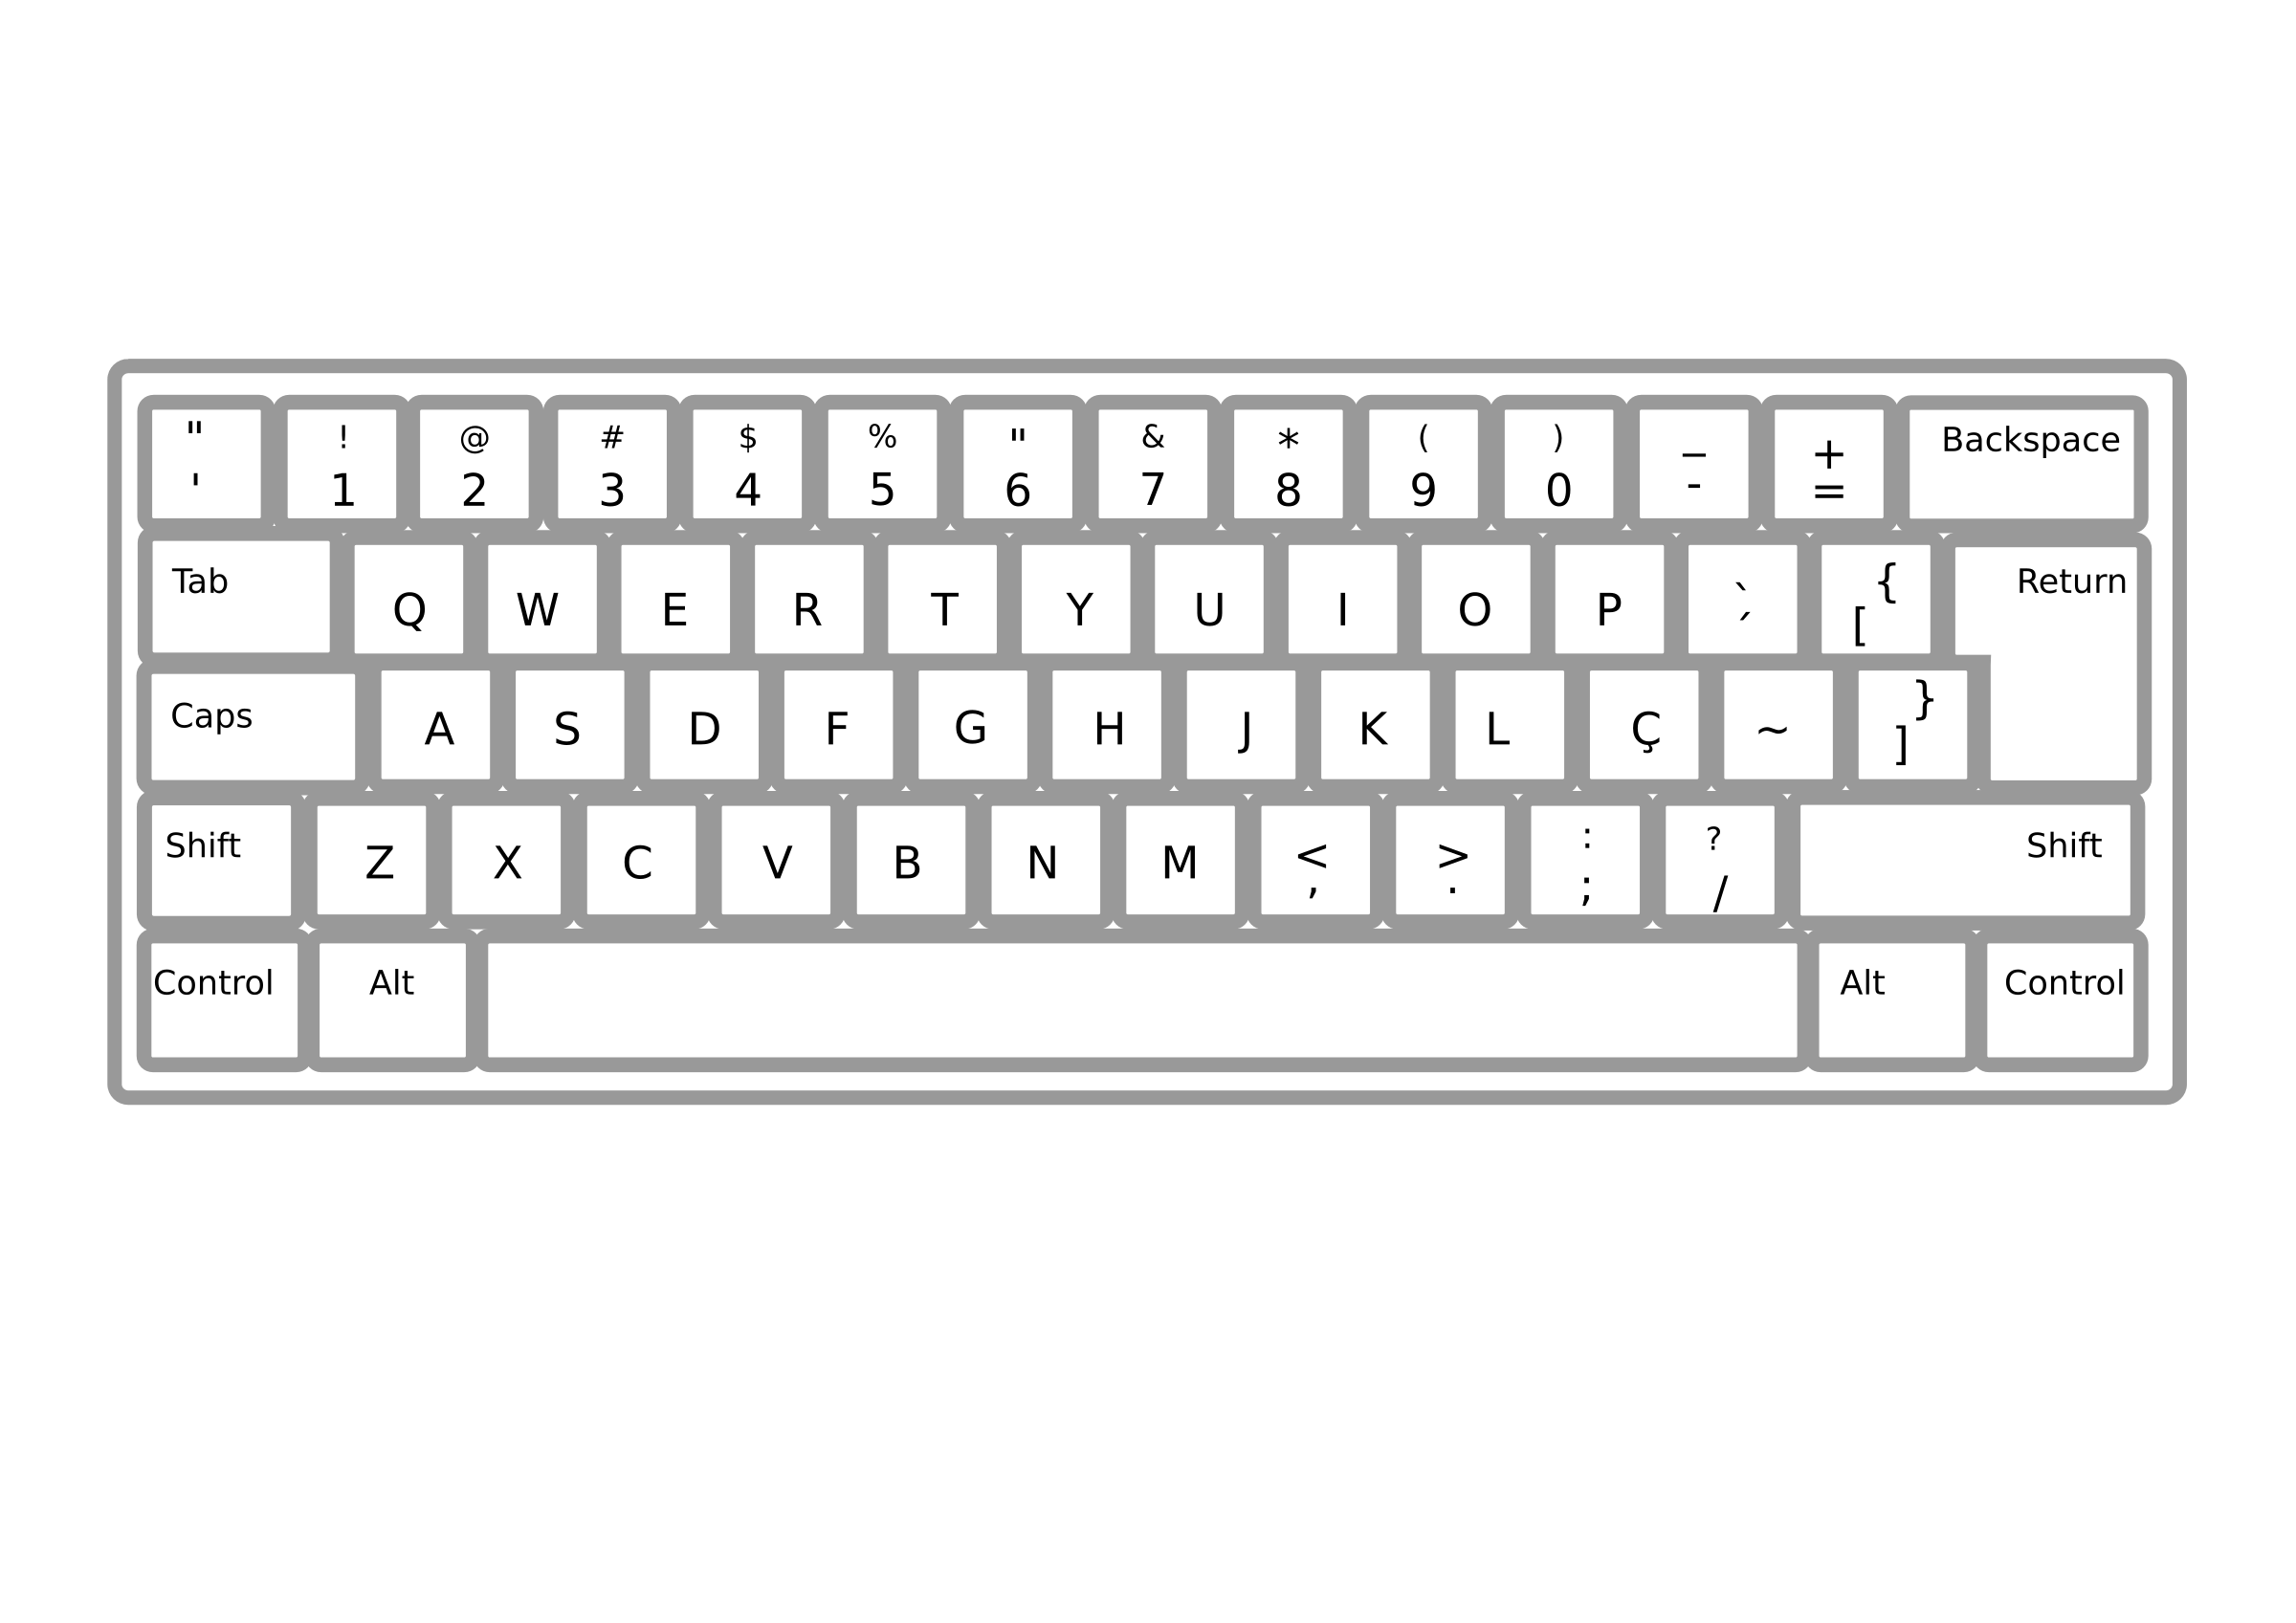 Clipart keyboards 2 » Clipart Station.